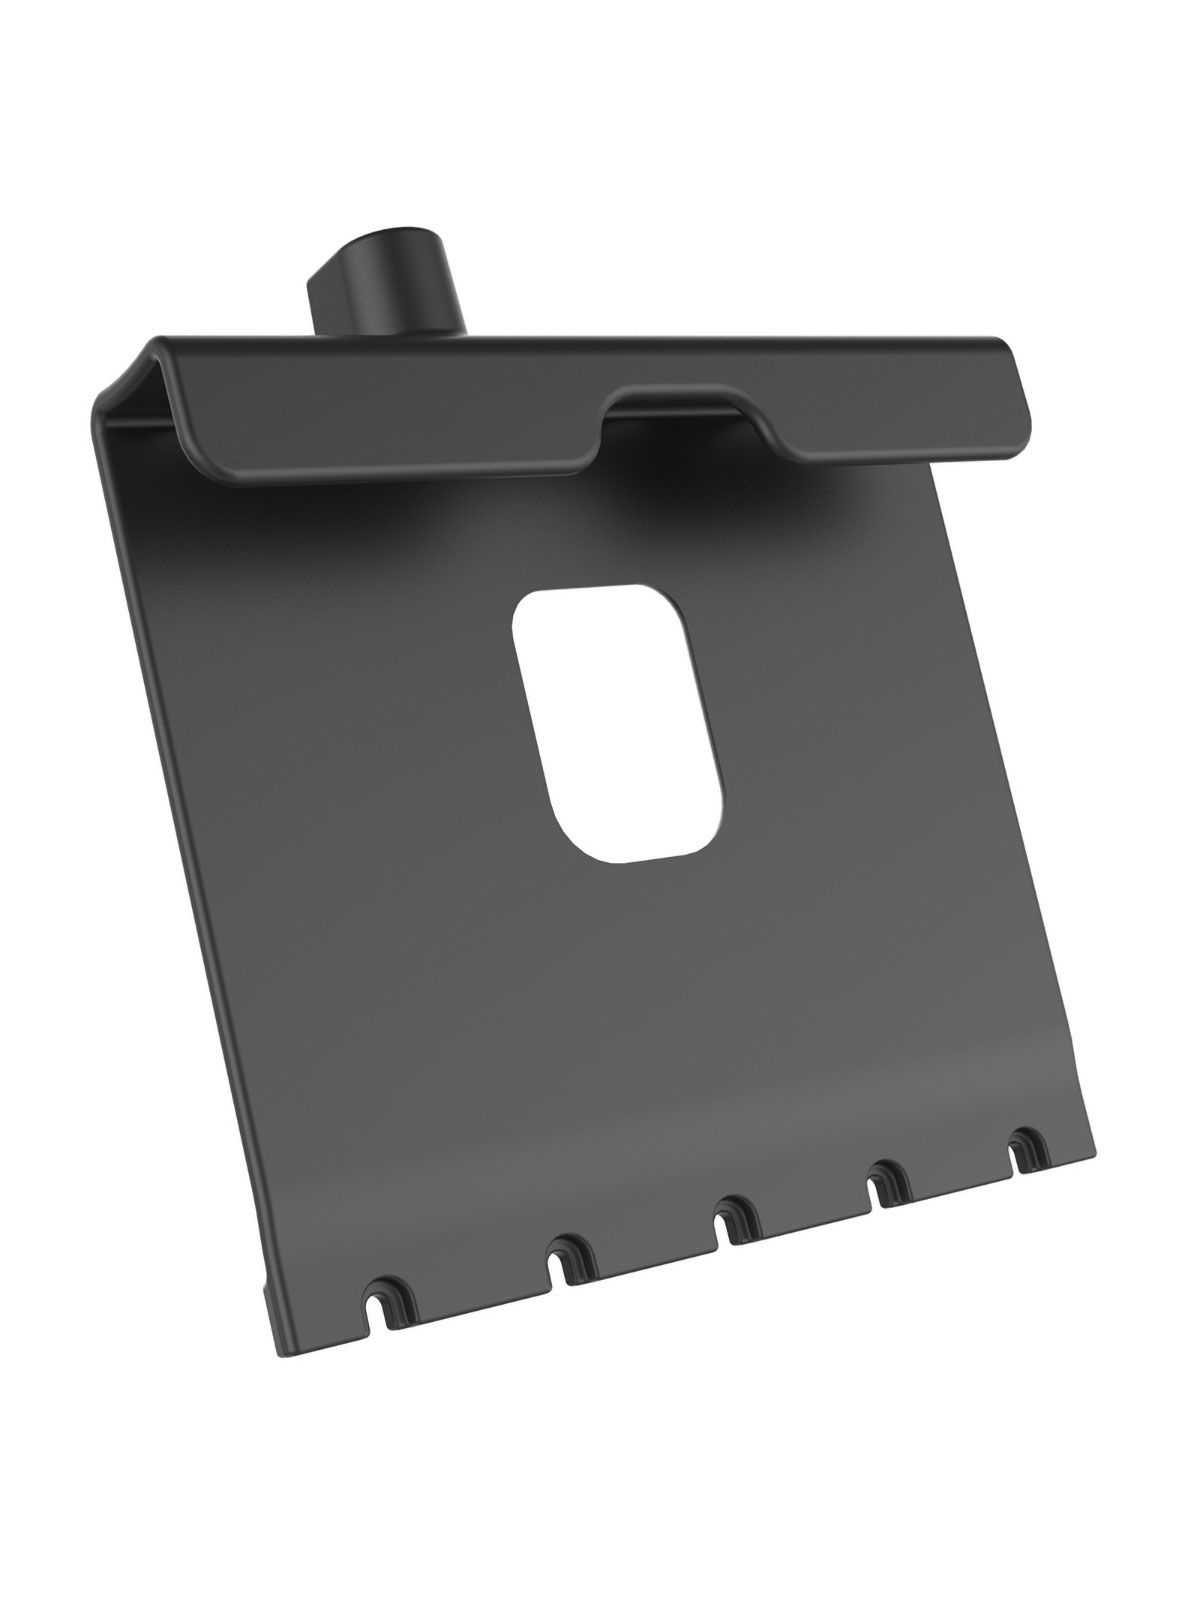 RAM Mounts Endkappe (oben) für GDS Dockingstation Samsung Galaxy Tab A 10.5 (SM-T590/-T597)